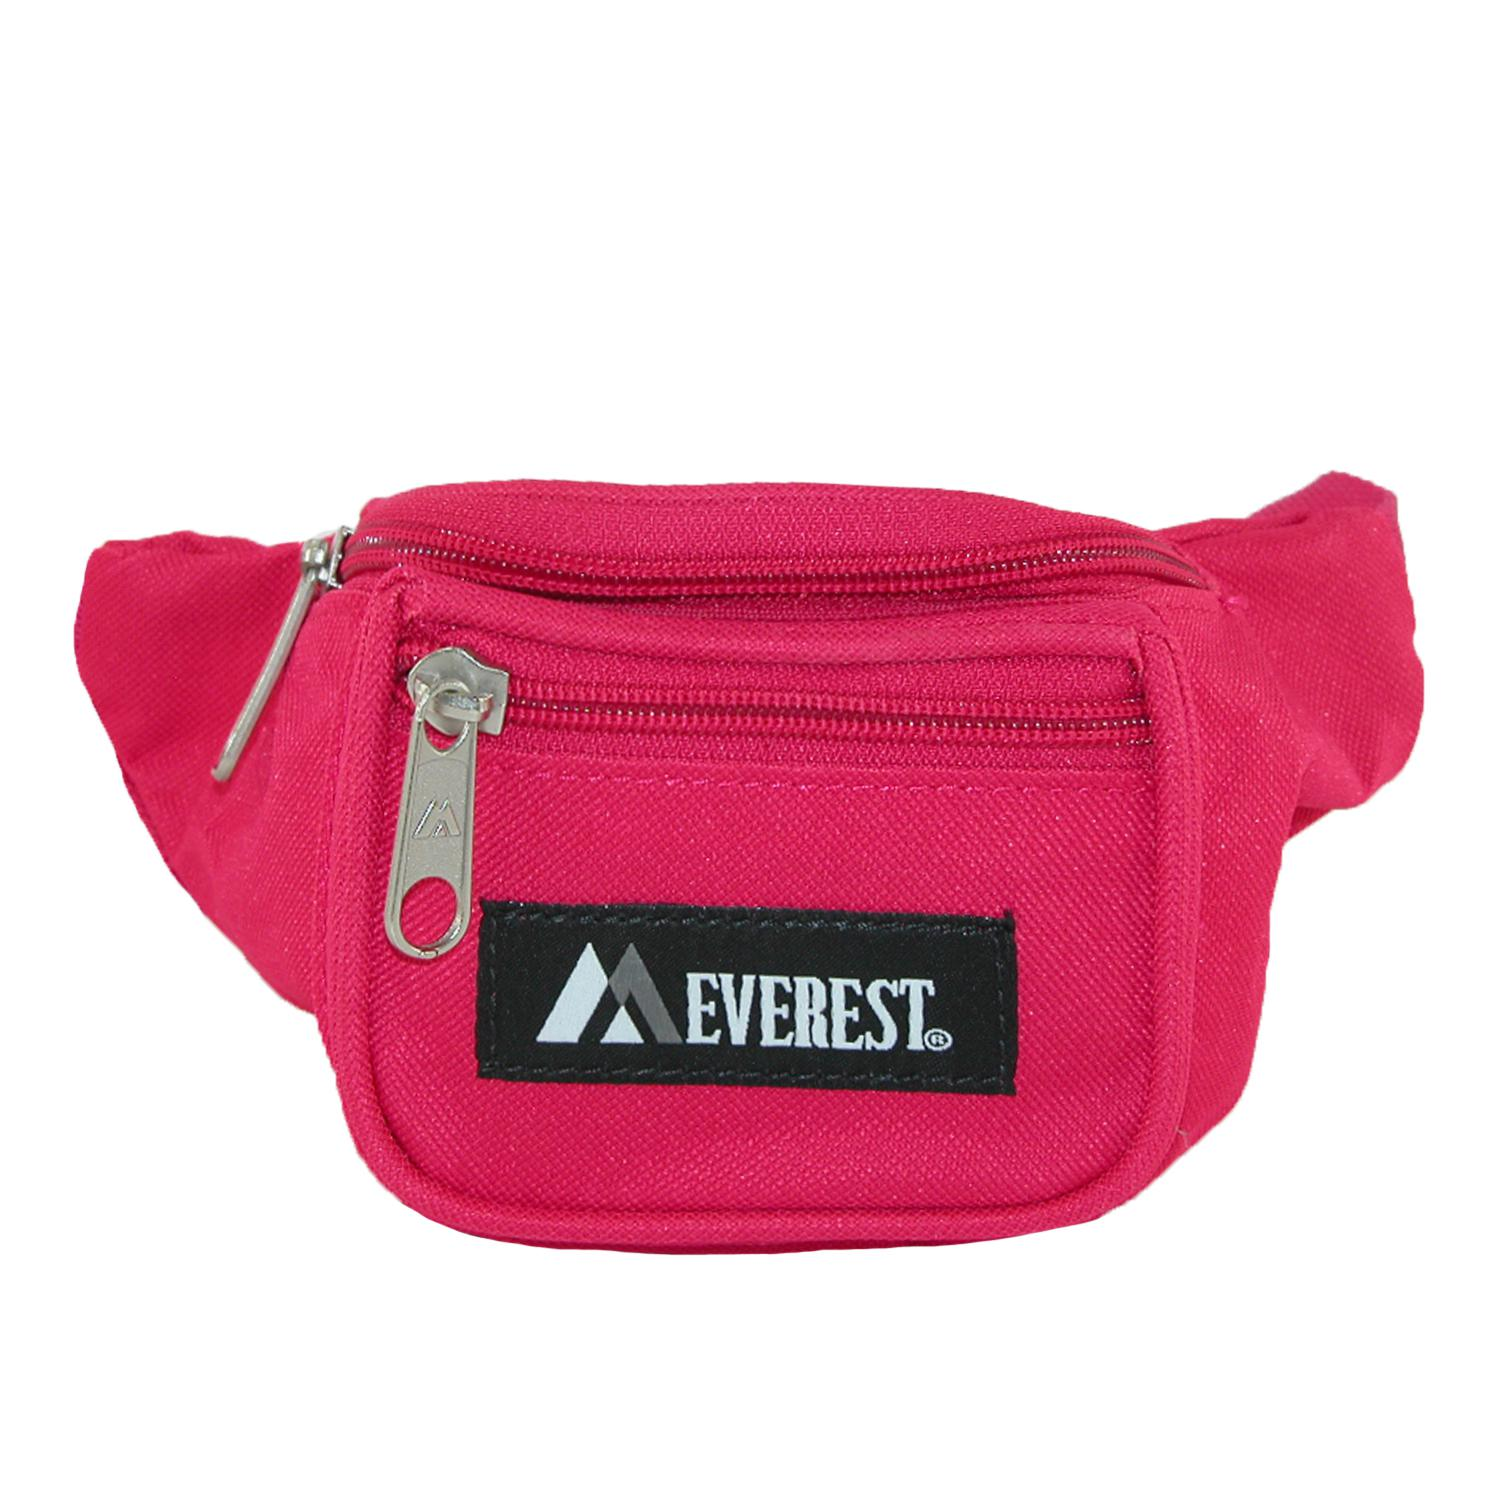 Everest Girls' Fabric Waist Pack Purse - Hot Pink one size (EV-GIRLS-HPK EV-GIRLS) photo